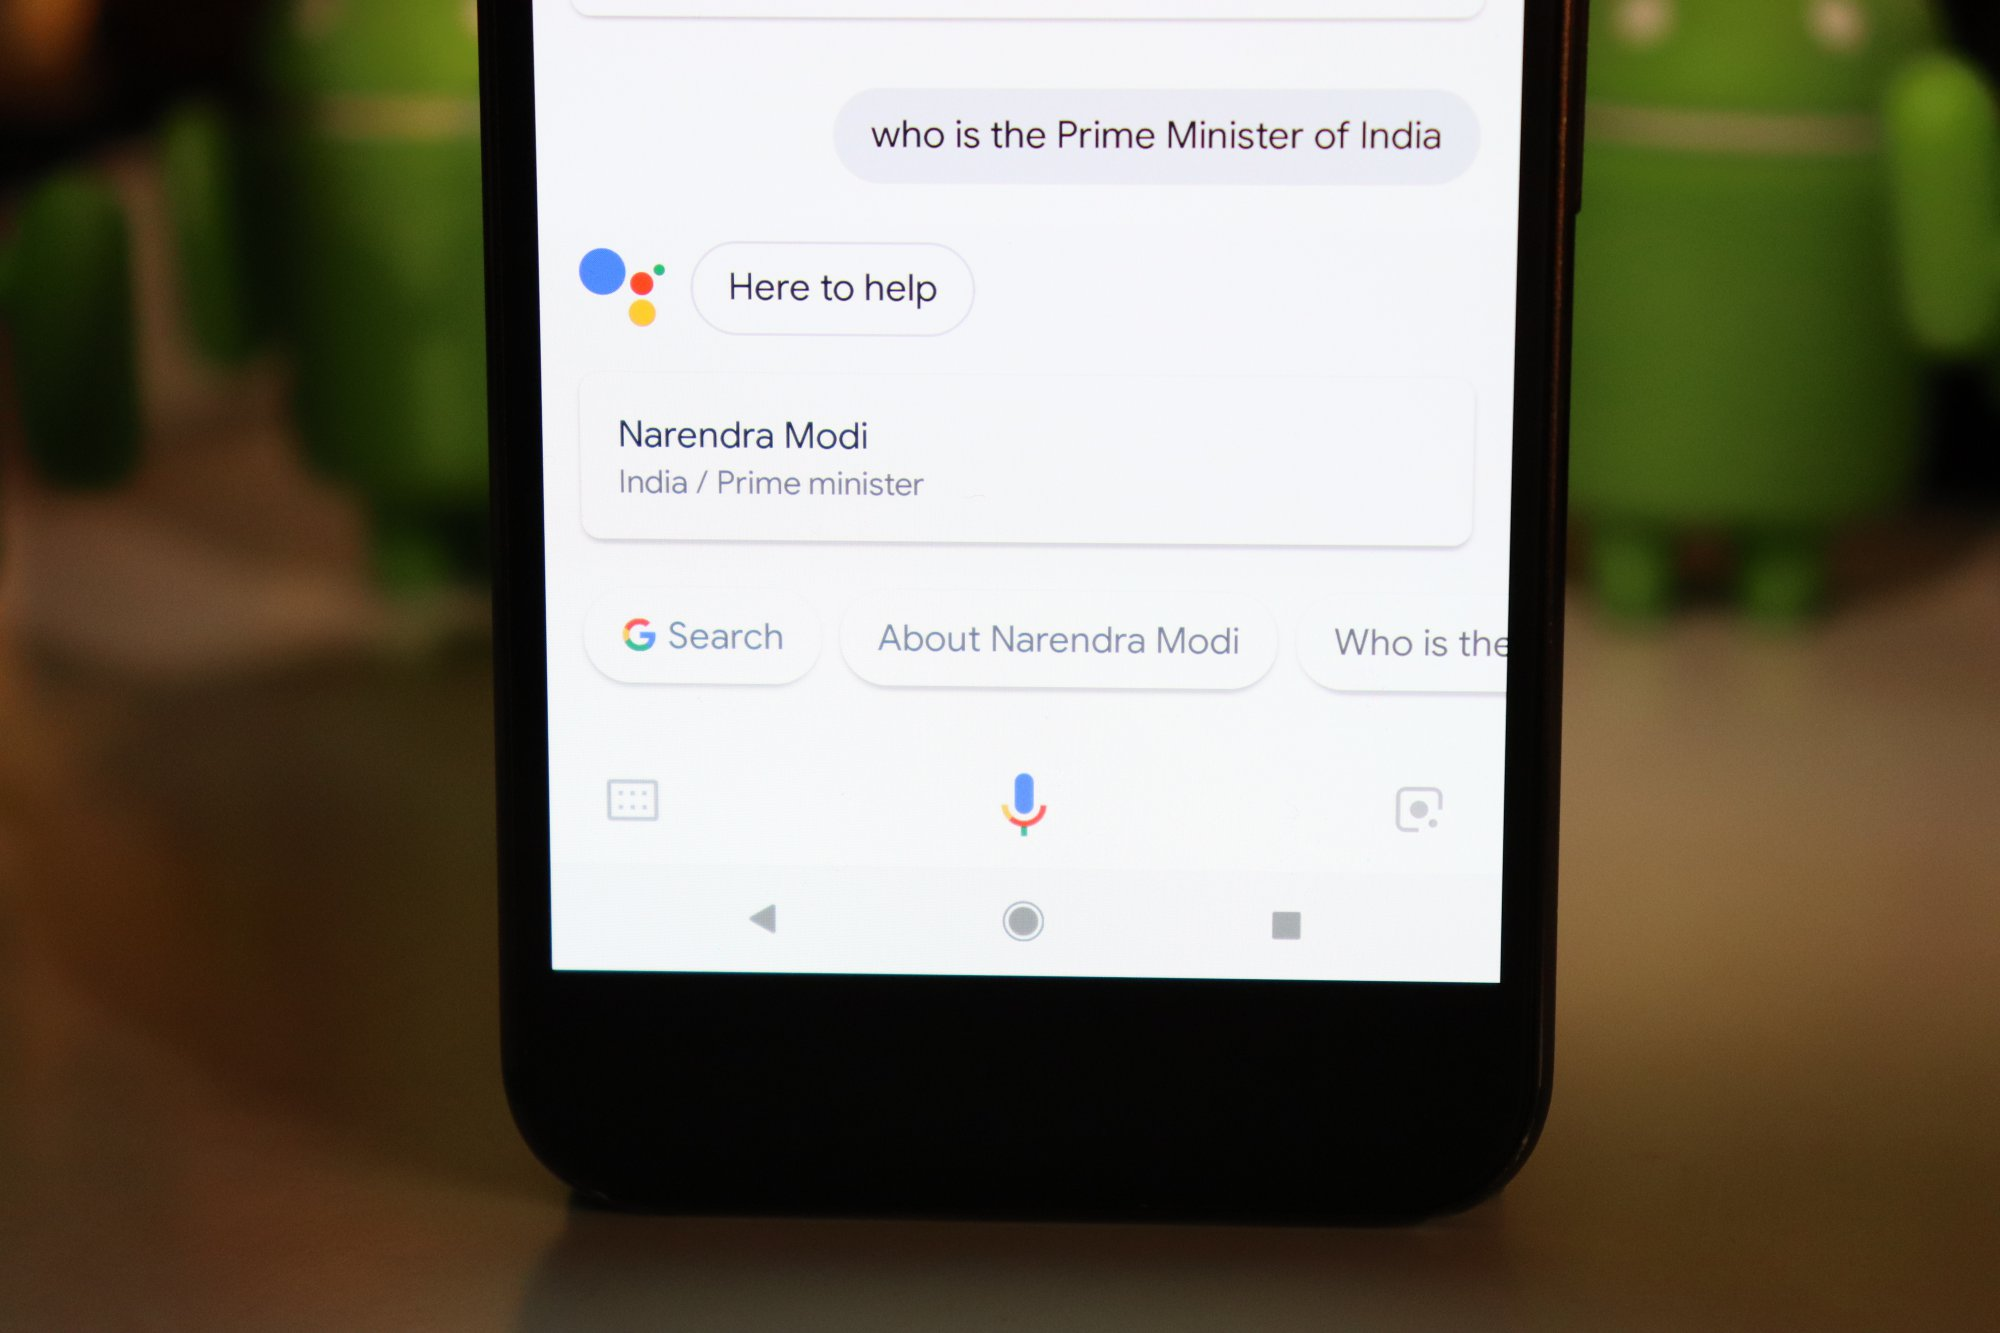 Google-Assistant-general-knowledge-question